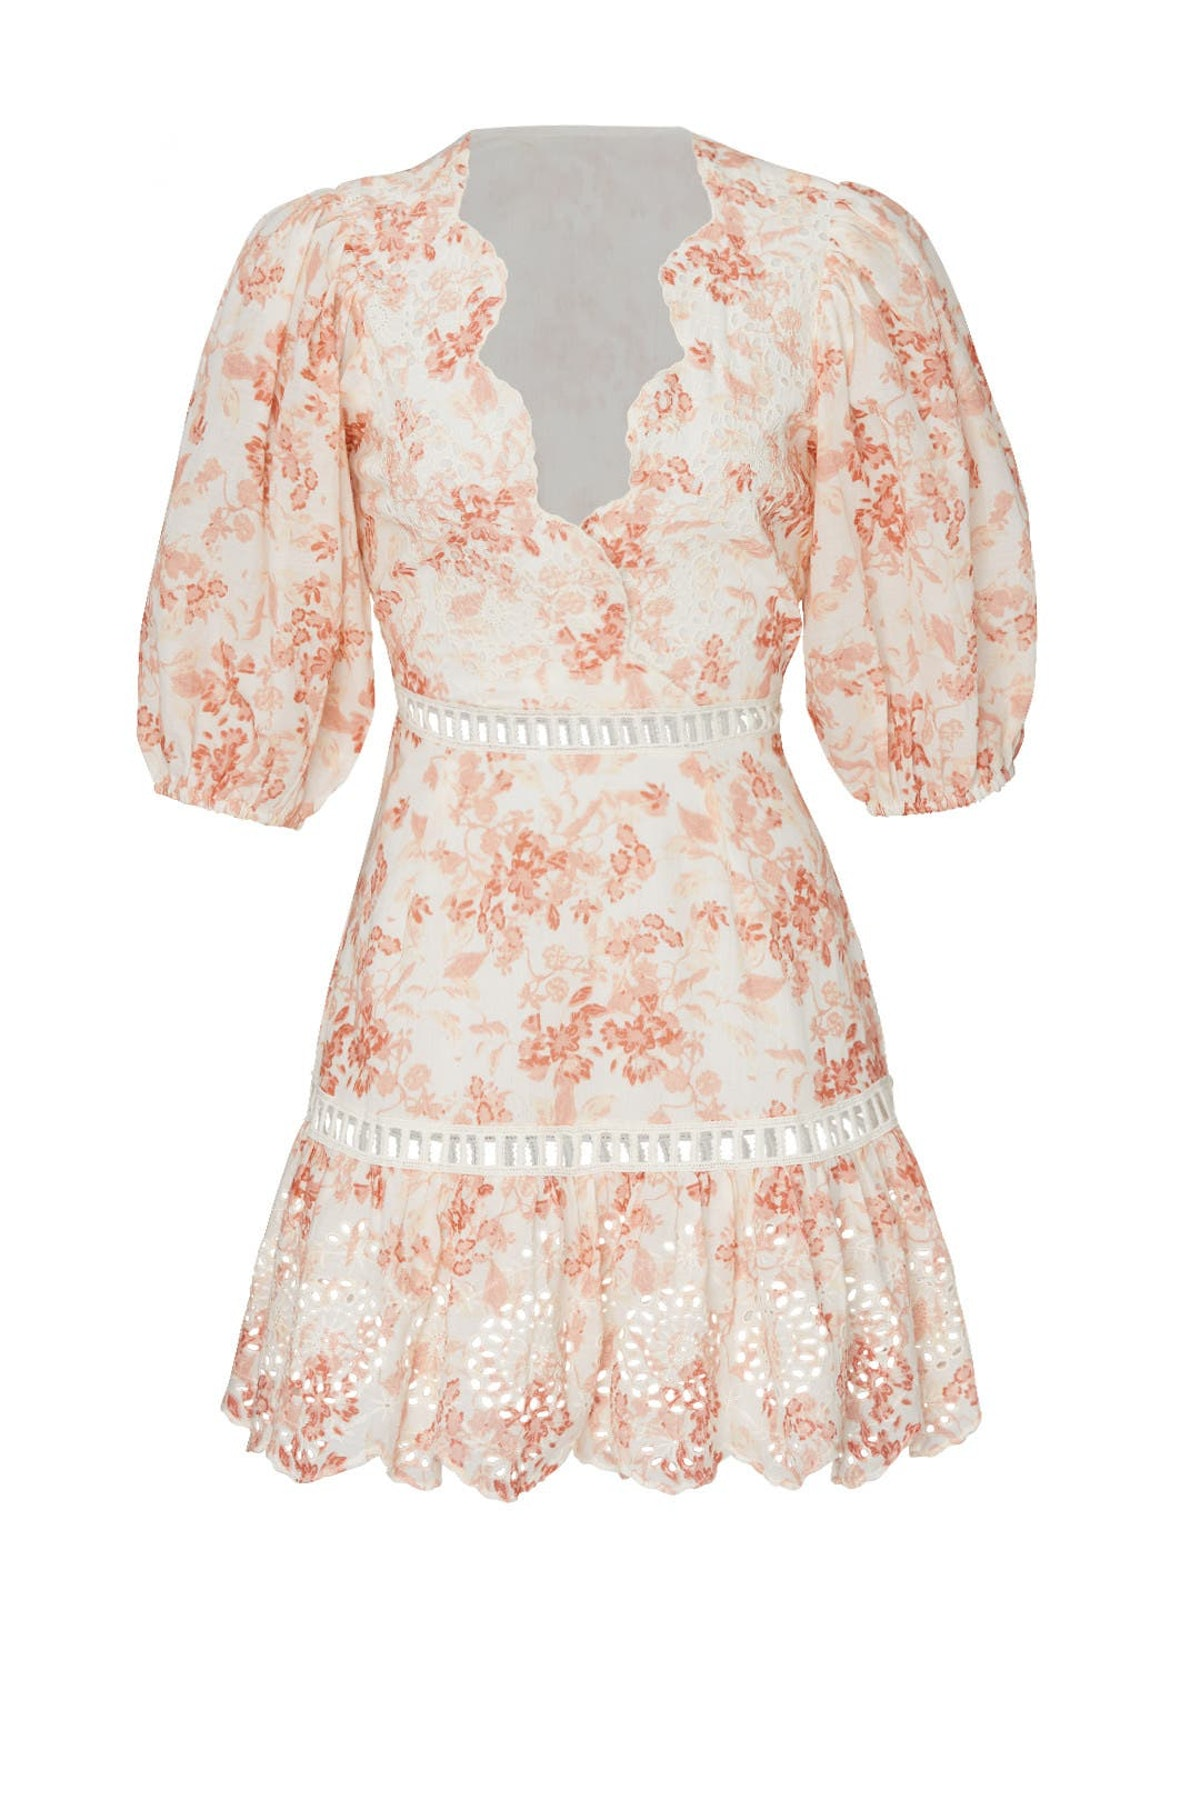 Taya floral dress from SAYLOR, available to shop via Rent The Runway.